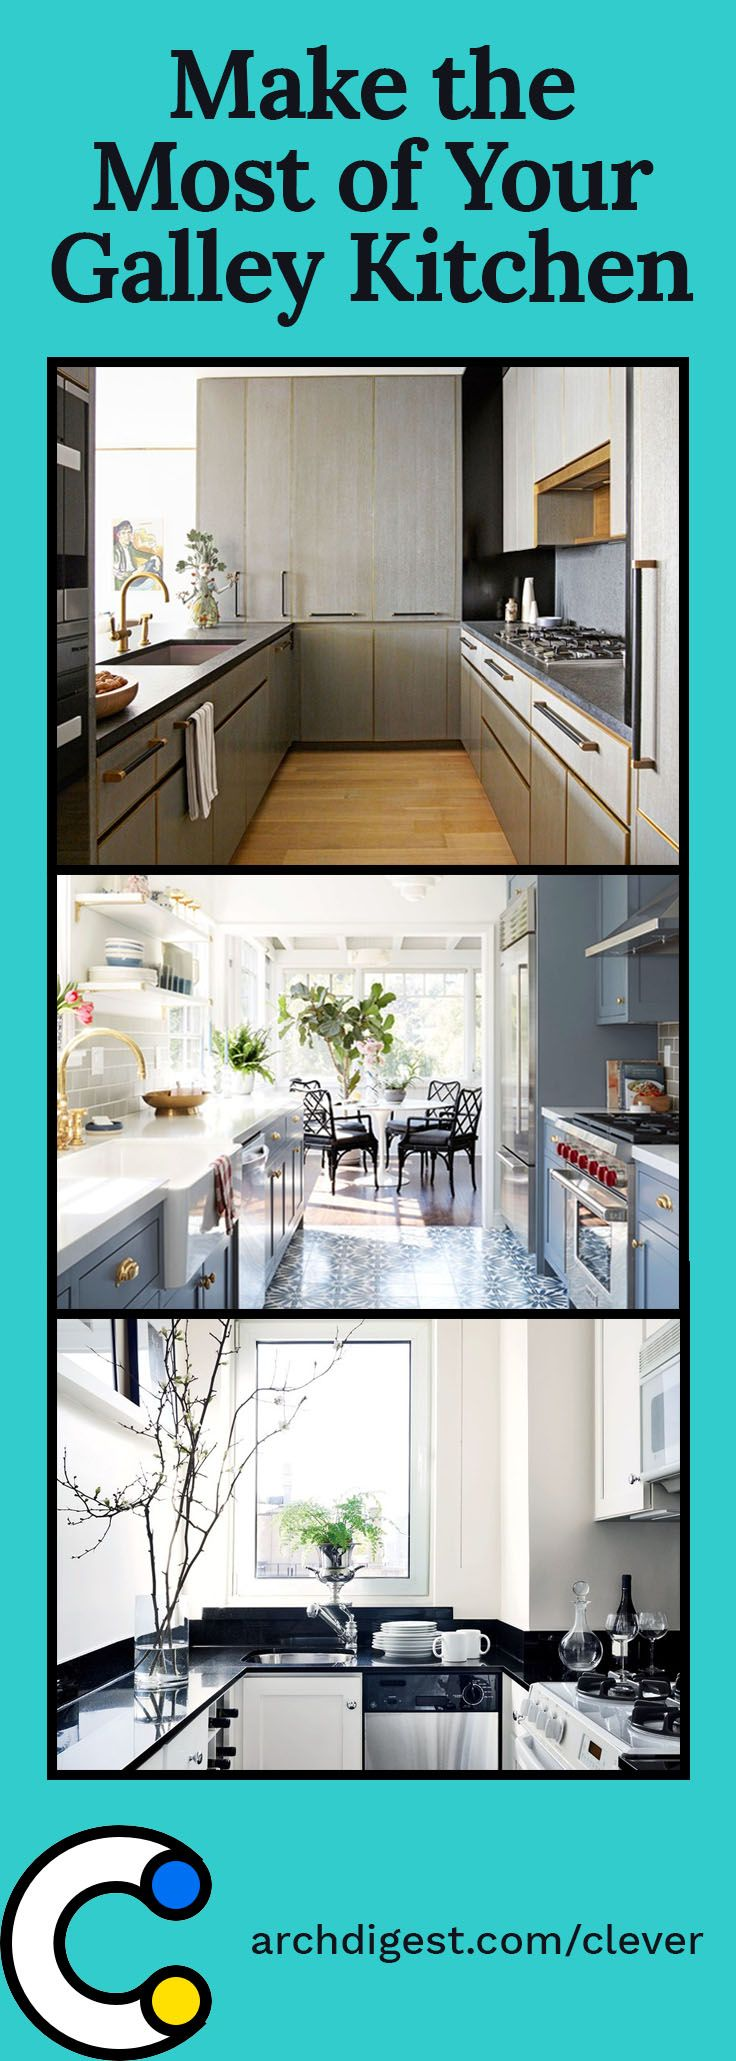 Small Galley Kitchen Ideas Design Inspiration: How To Make The Most Of Your Galley Kitchen In 2019